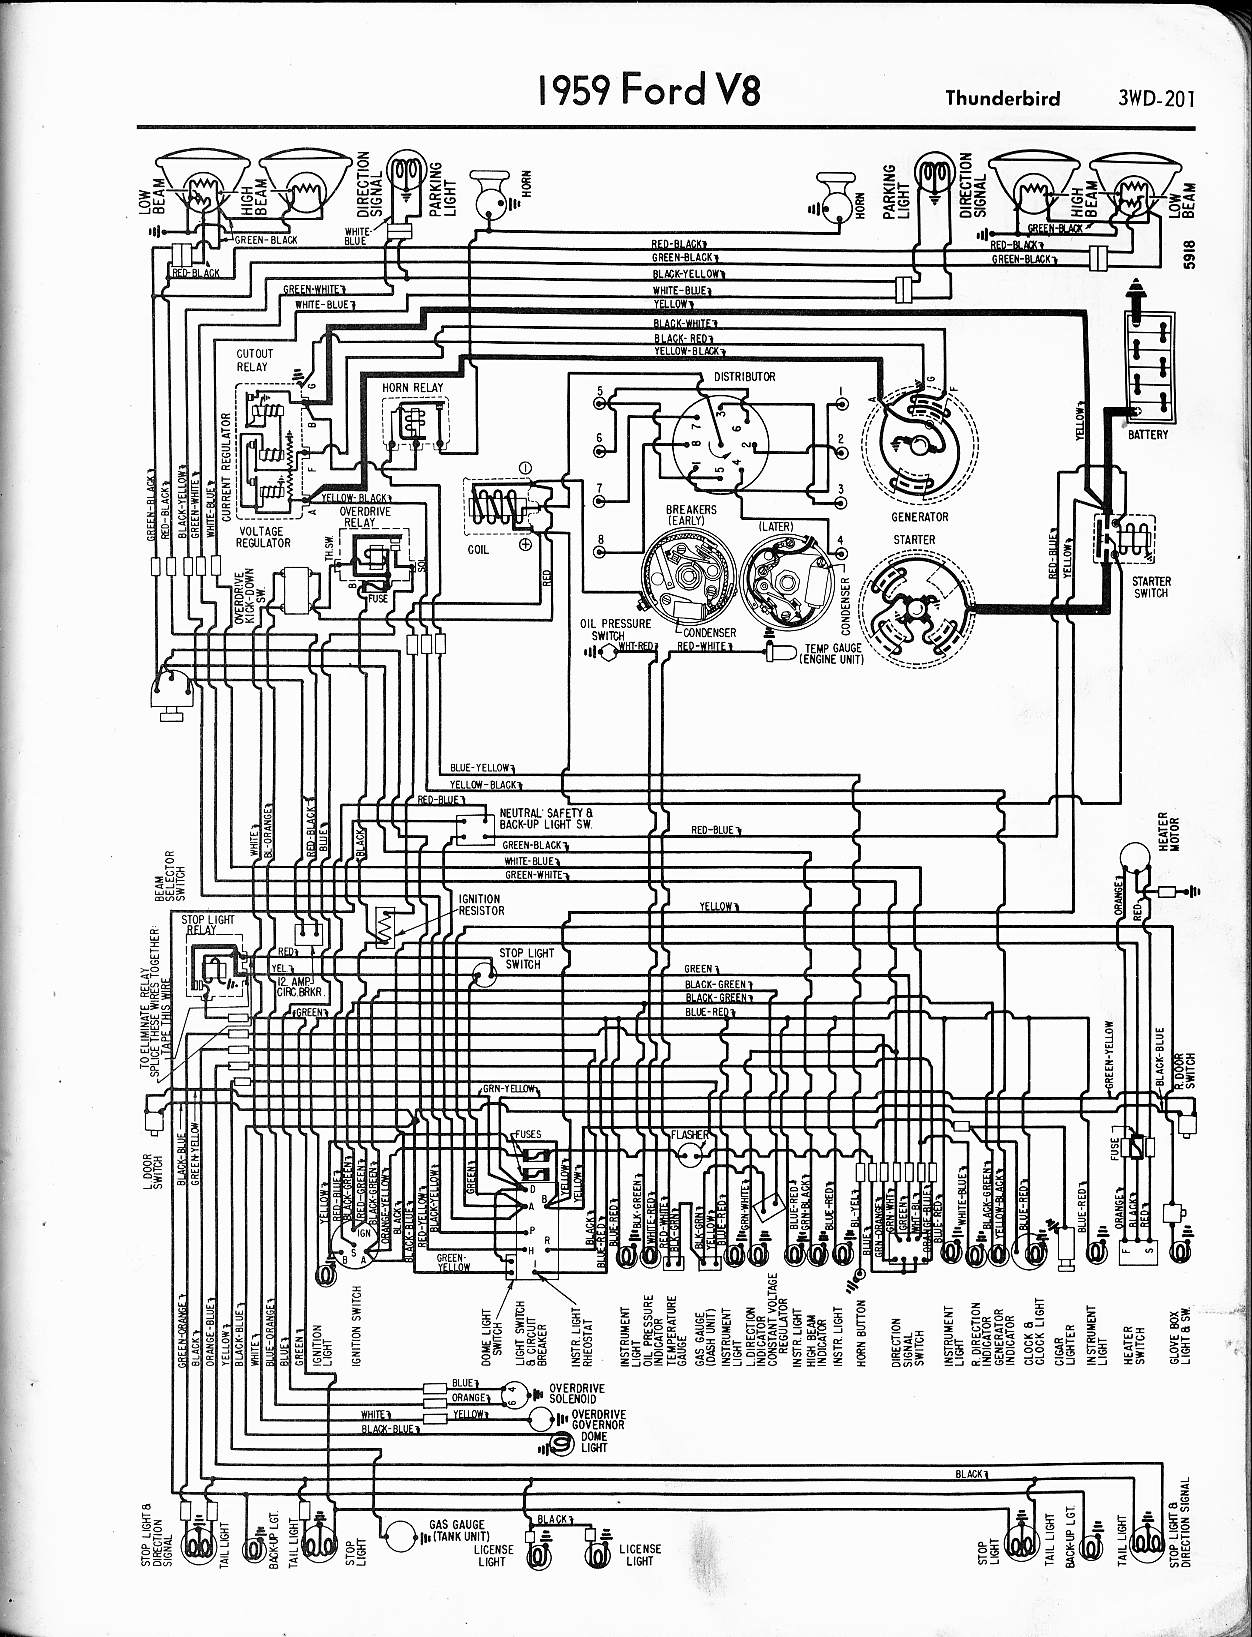 1958 Ford Wiring Diagram Trusted Schematics 1955 Buick Century Alternator 57 65 Diagrams